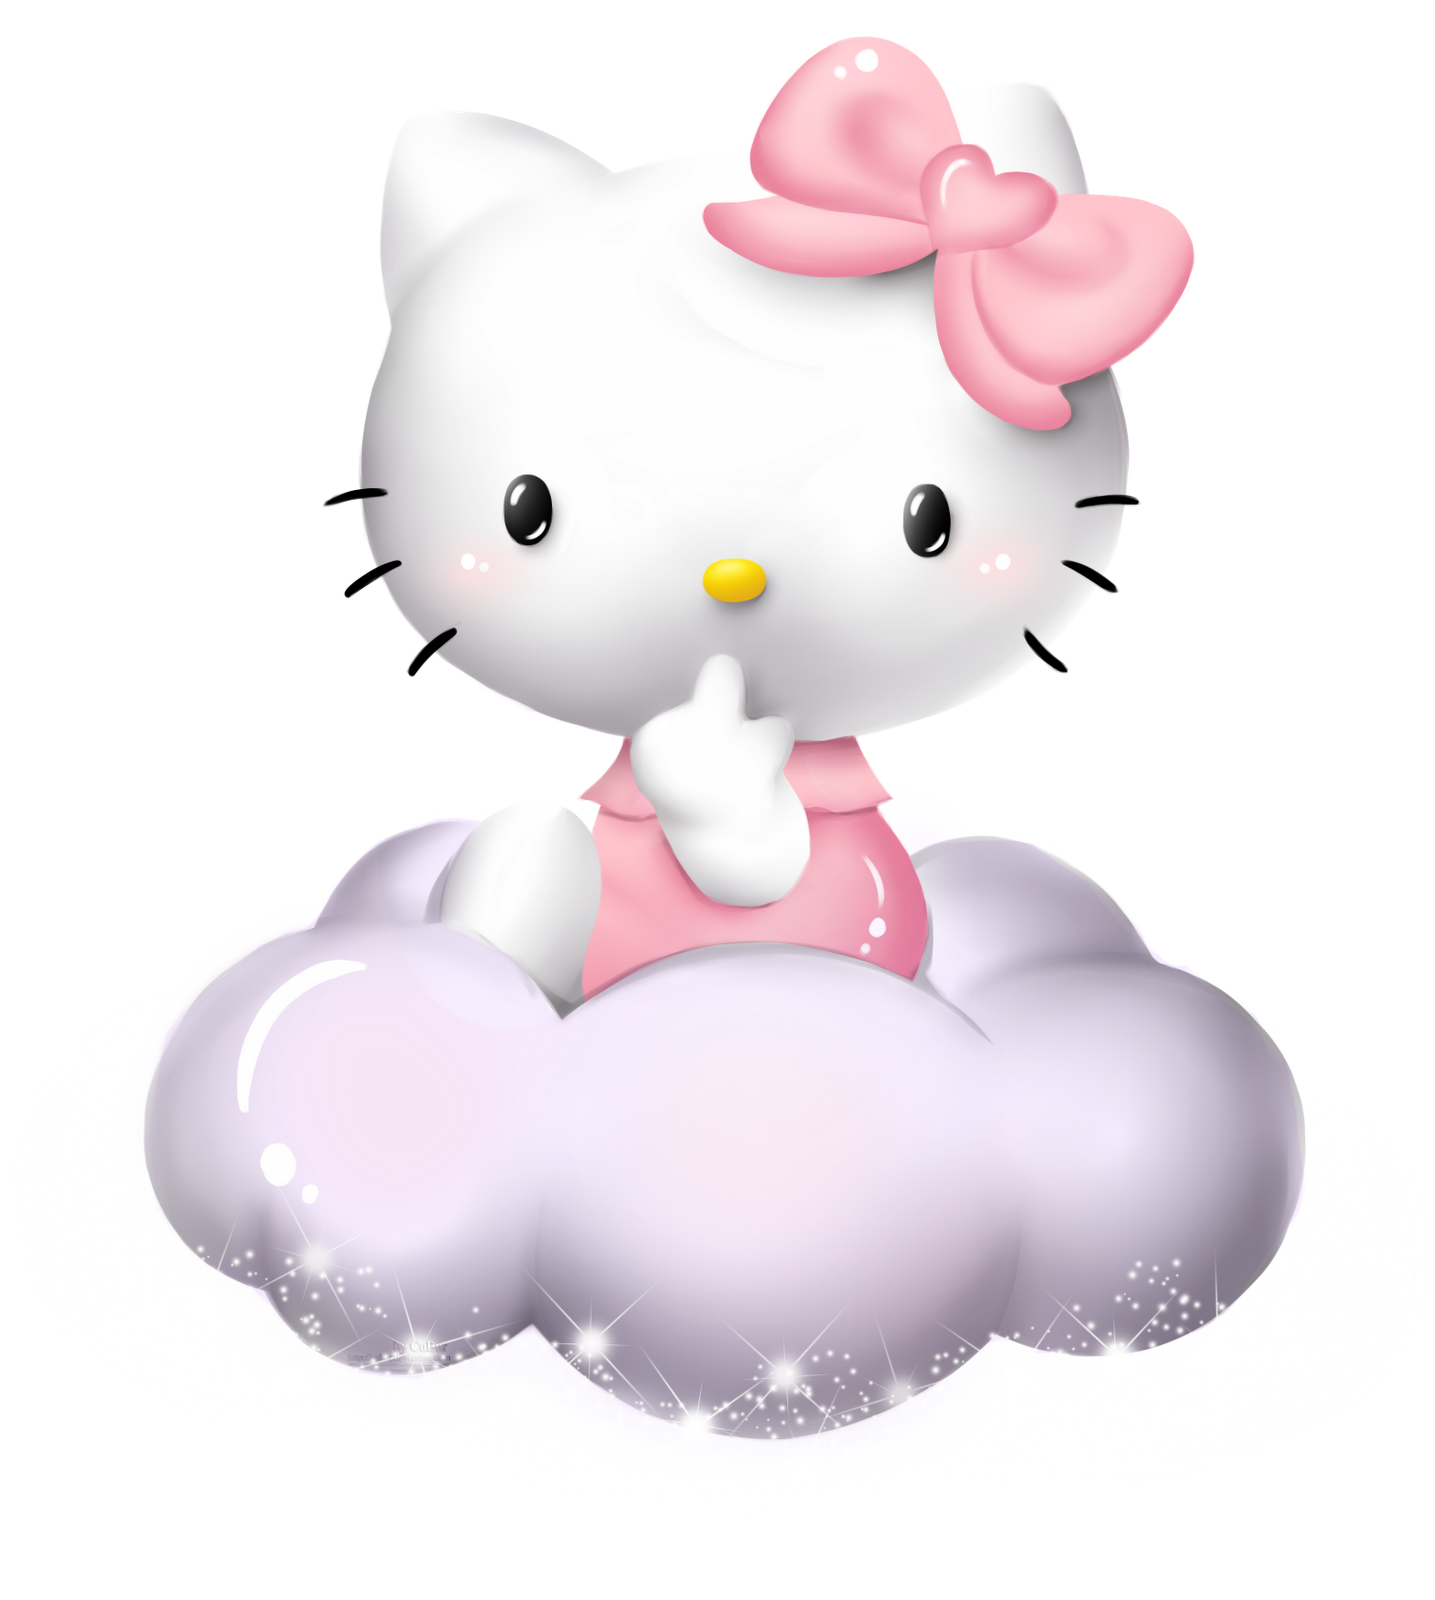 Sweet hello kitty clip art oh my fiesta in english - Hello kitty image ...